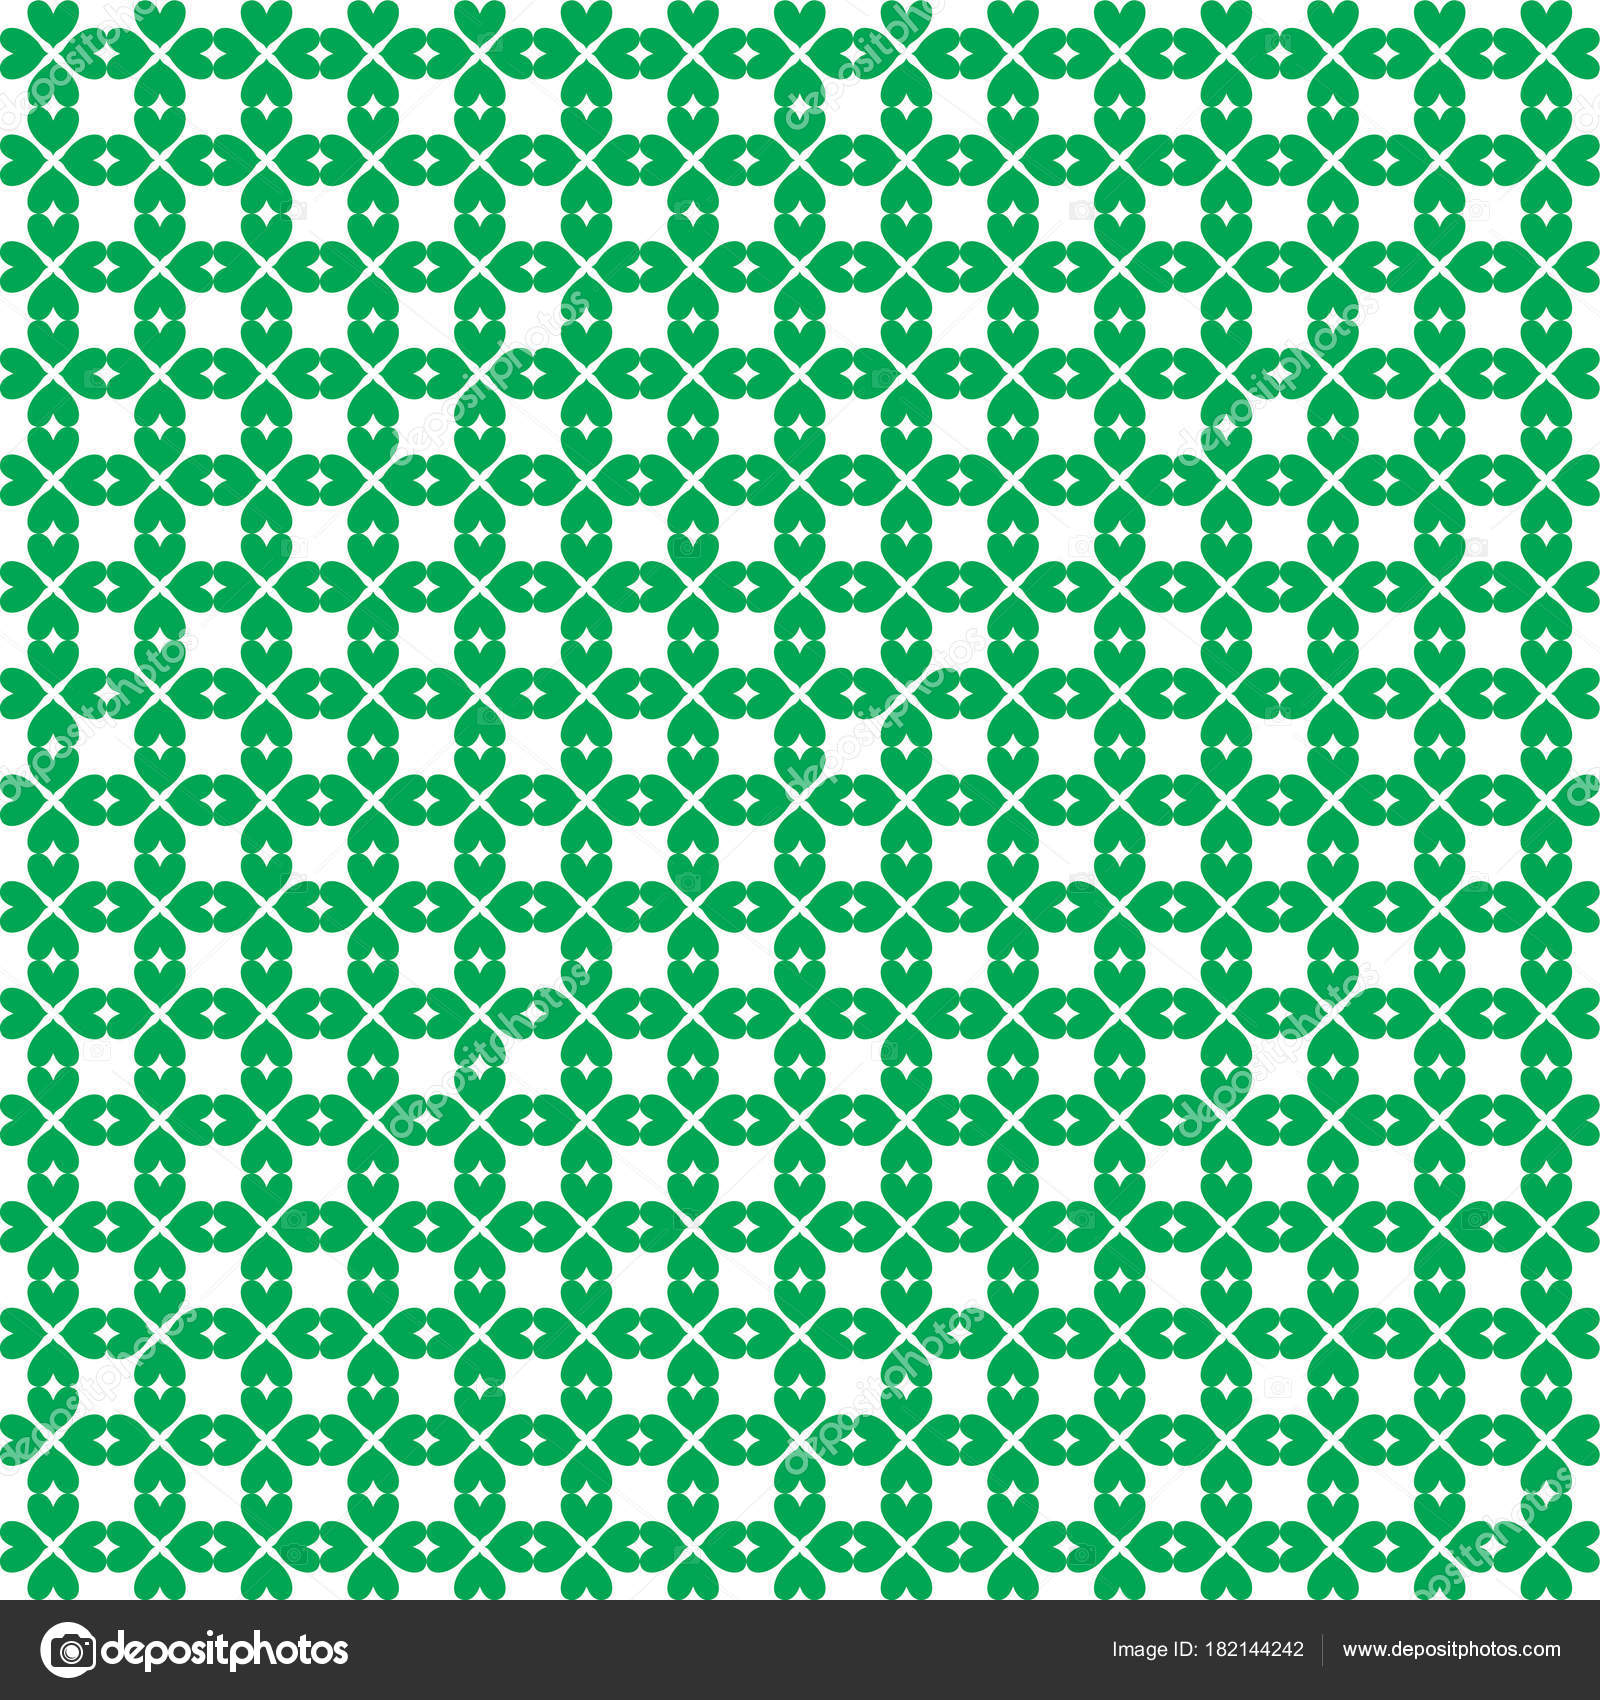 Saint Patricks Day Wallpaper Inconsútil Con El Patrón De